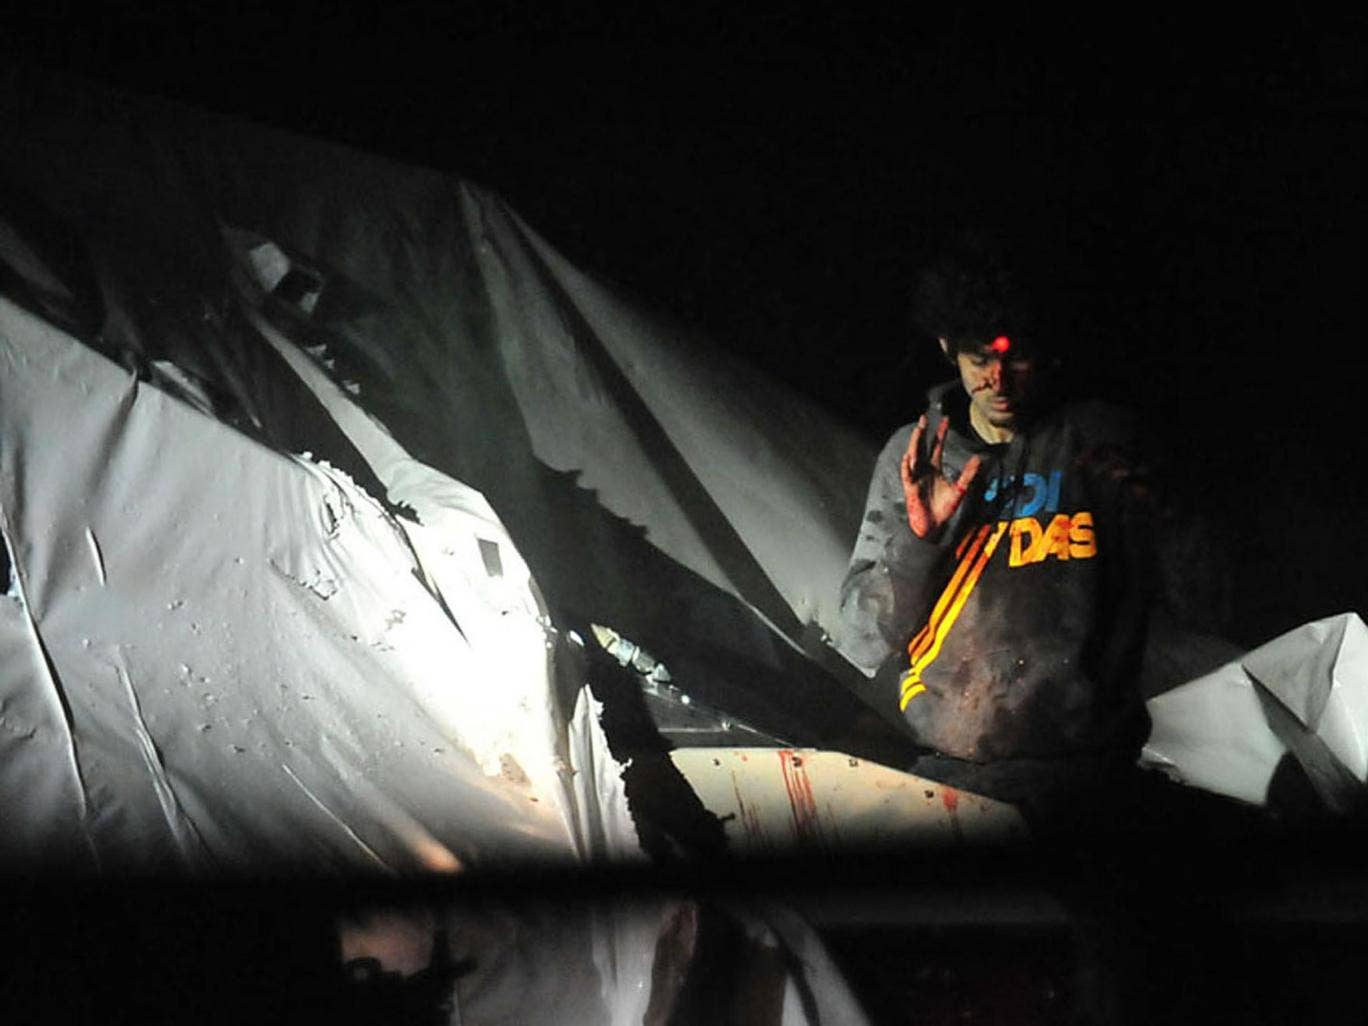 An injured Dzhokhar Tsarnaev emerges from the boat where he had been hiding - a sniper's red dot can be seen on his head